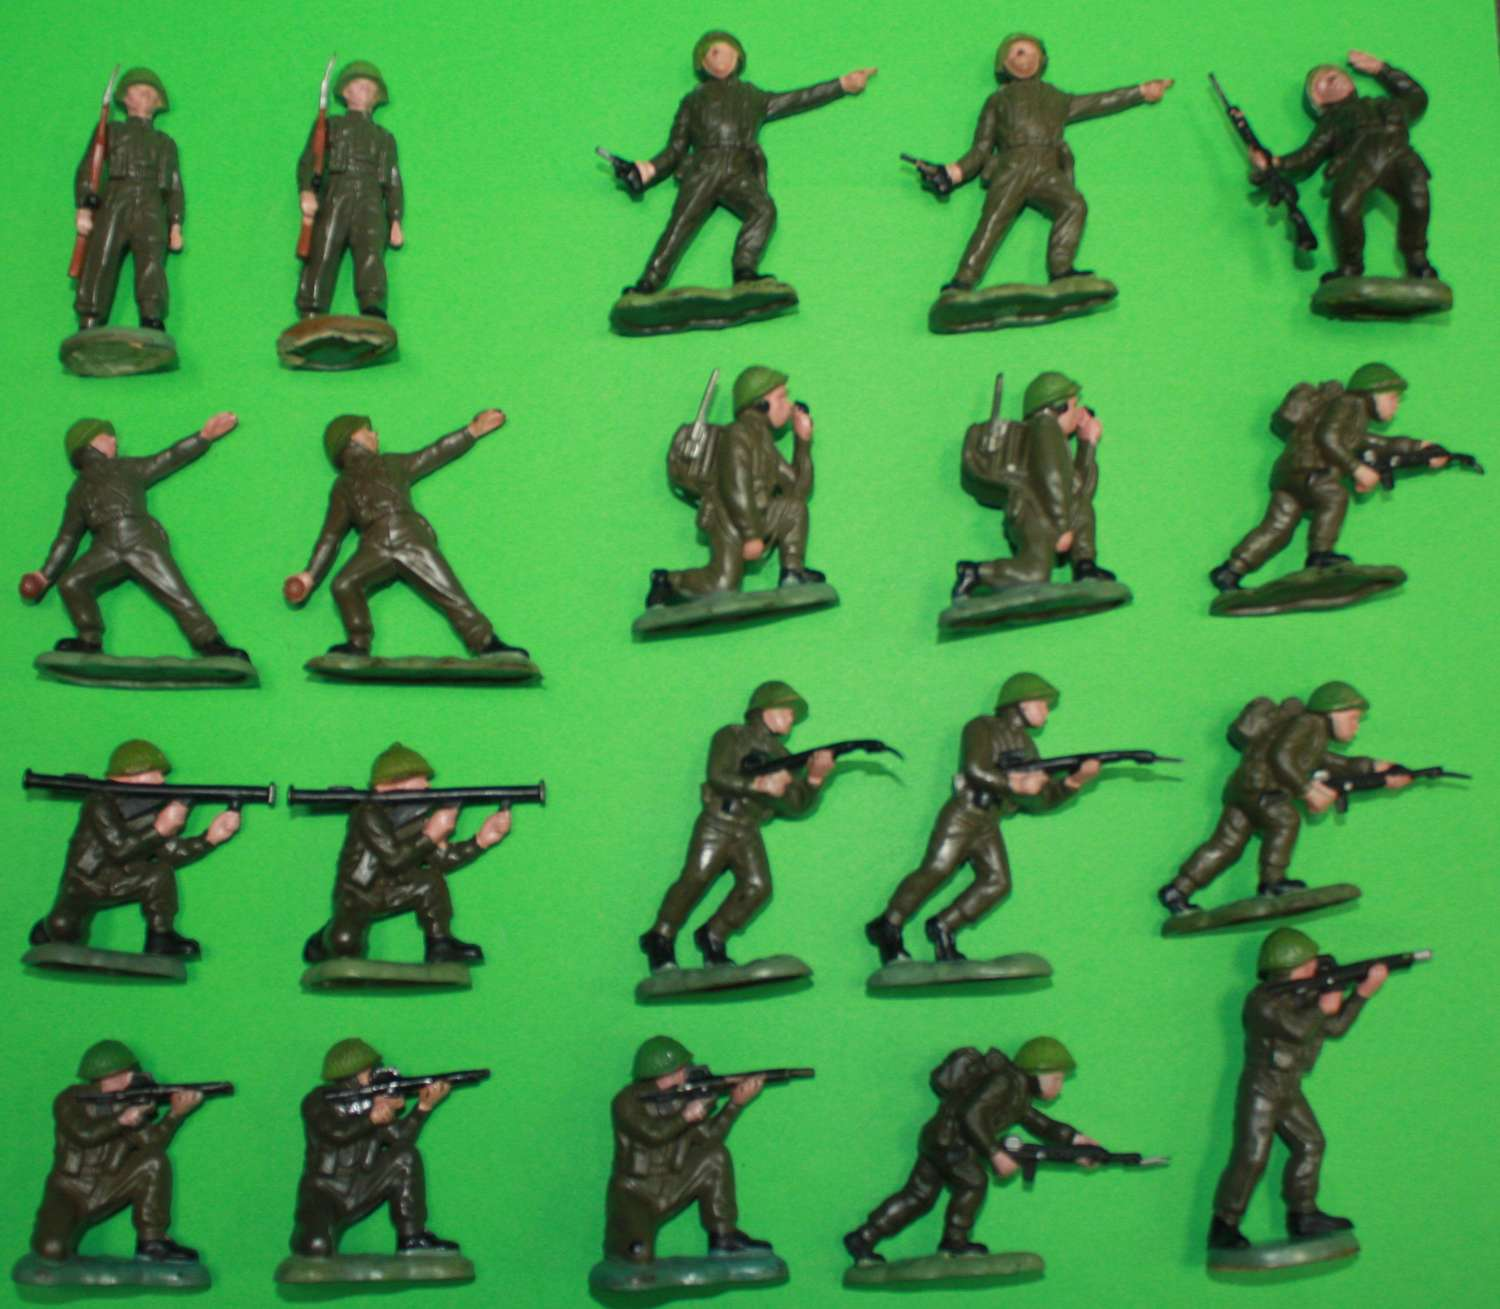 A GROUP OF 20 1960'S BRITAIN'S PLASTIC MODERN BRITISH ARMY TROOPS